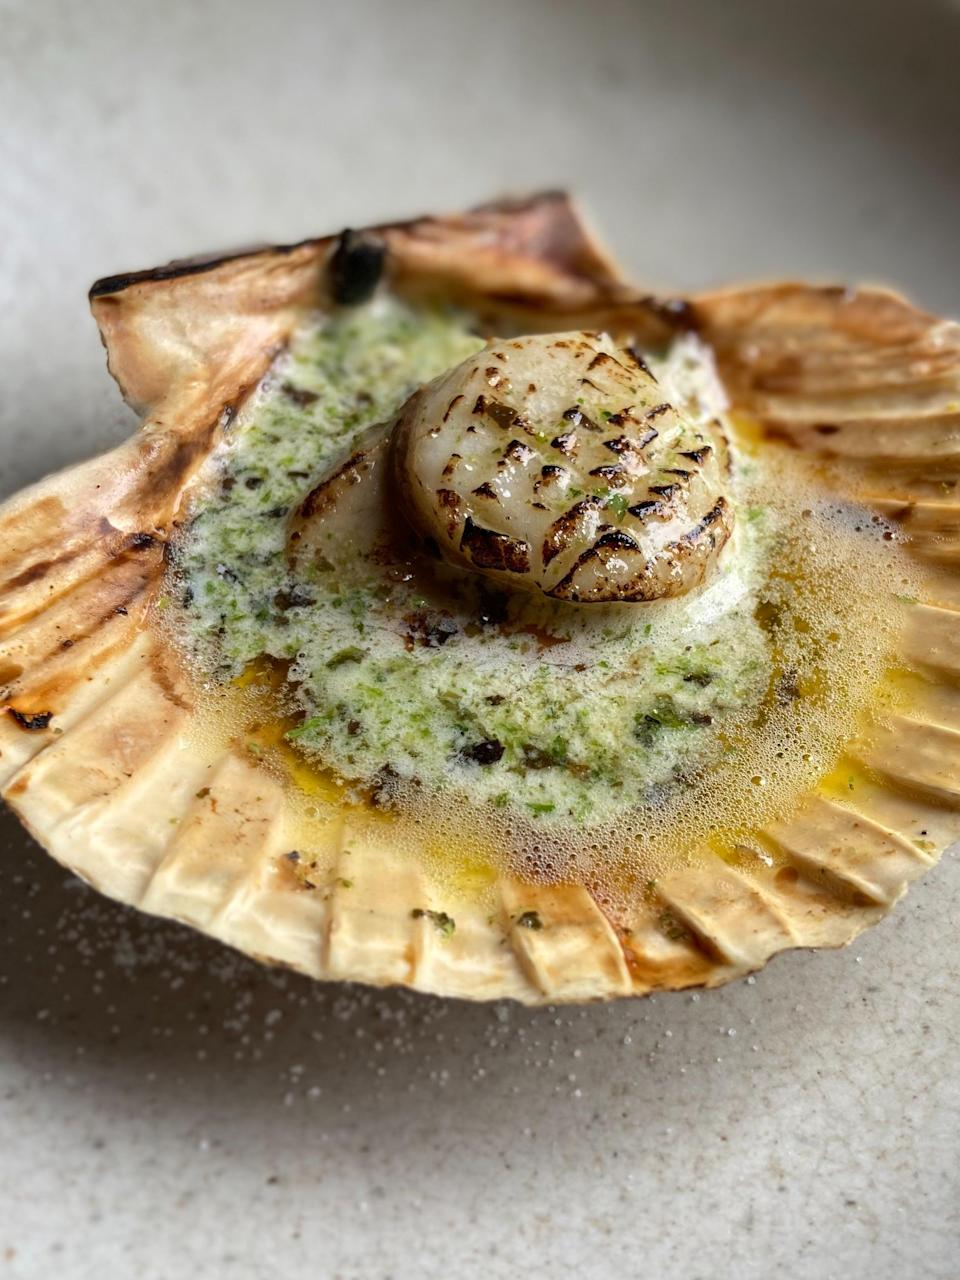 Char-kissed scallops, sea-sweet and cooked just beyond translucency, sitting in devotional pools of butter in their shells (The Rocket Store)